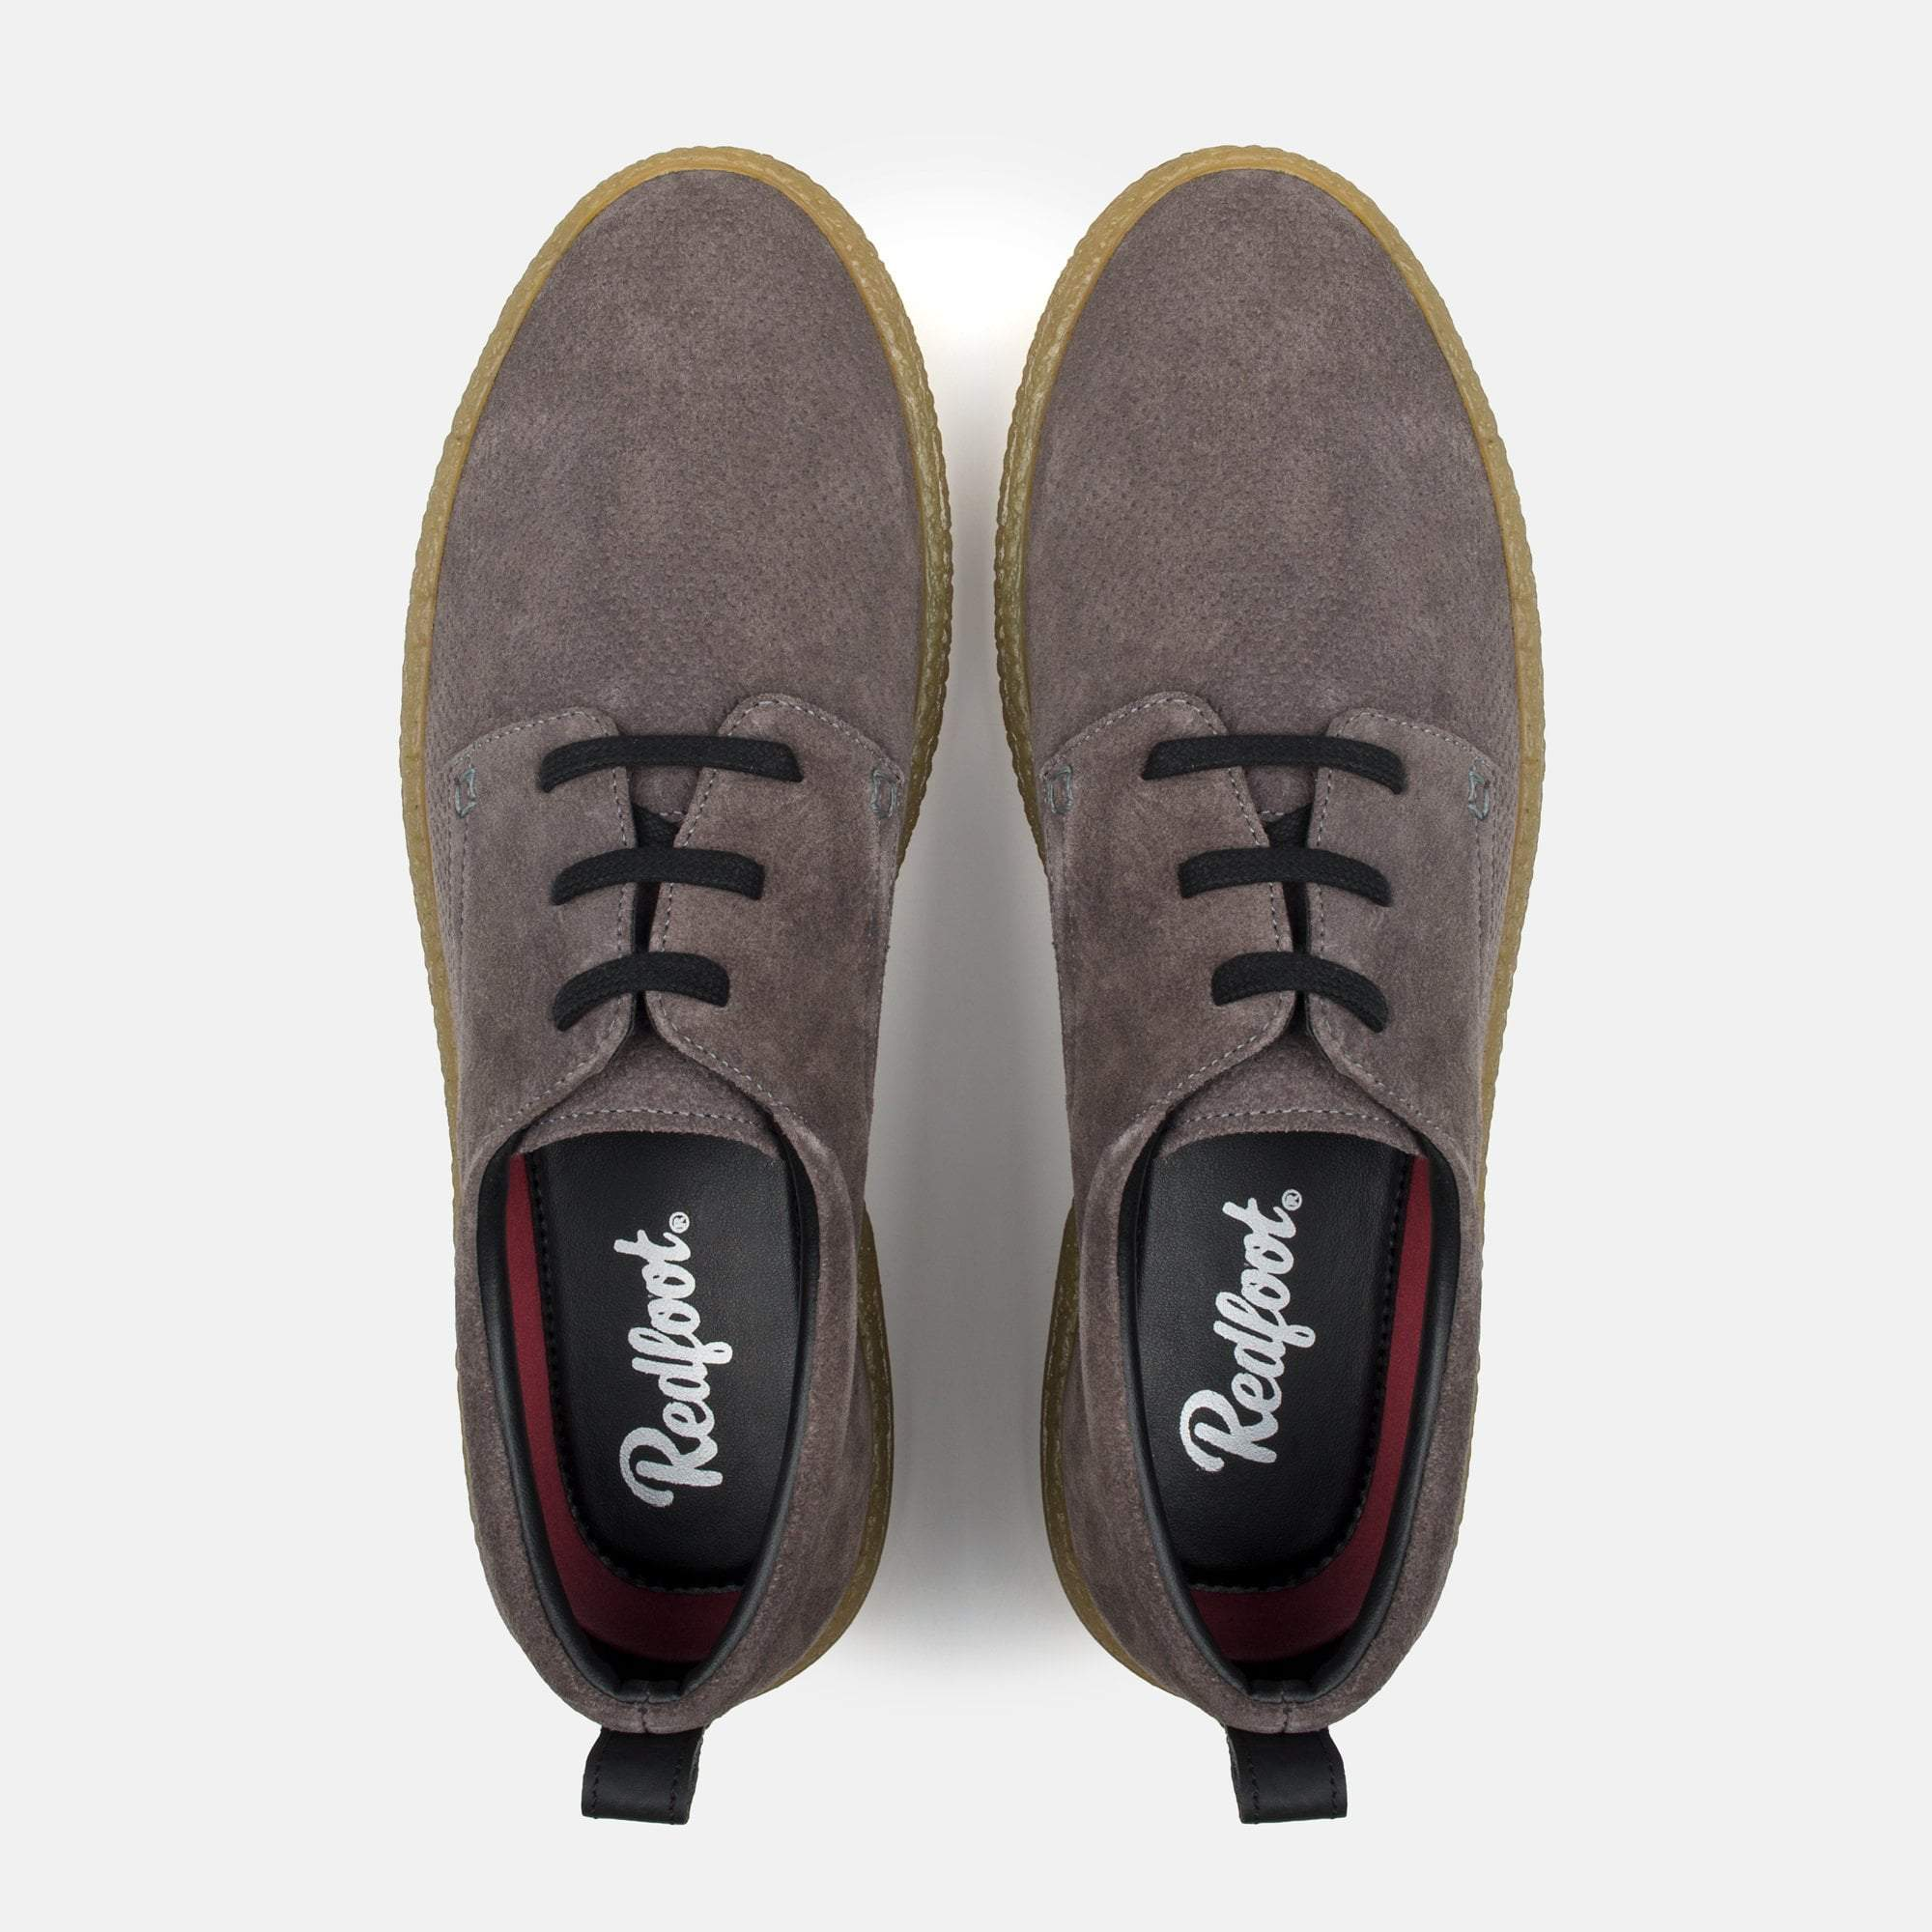 Redfoot Footwear UK 6 / EURO 39 / US 7 / Chestnut / Suede MARTIN STONE